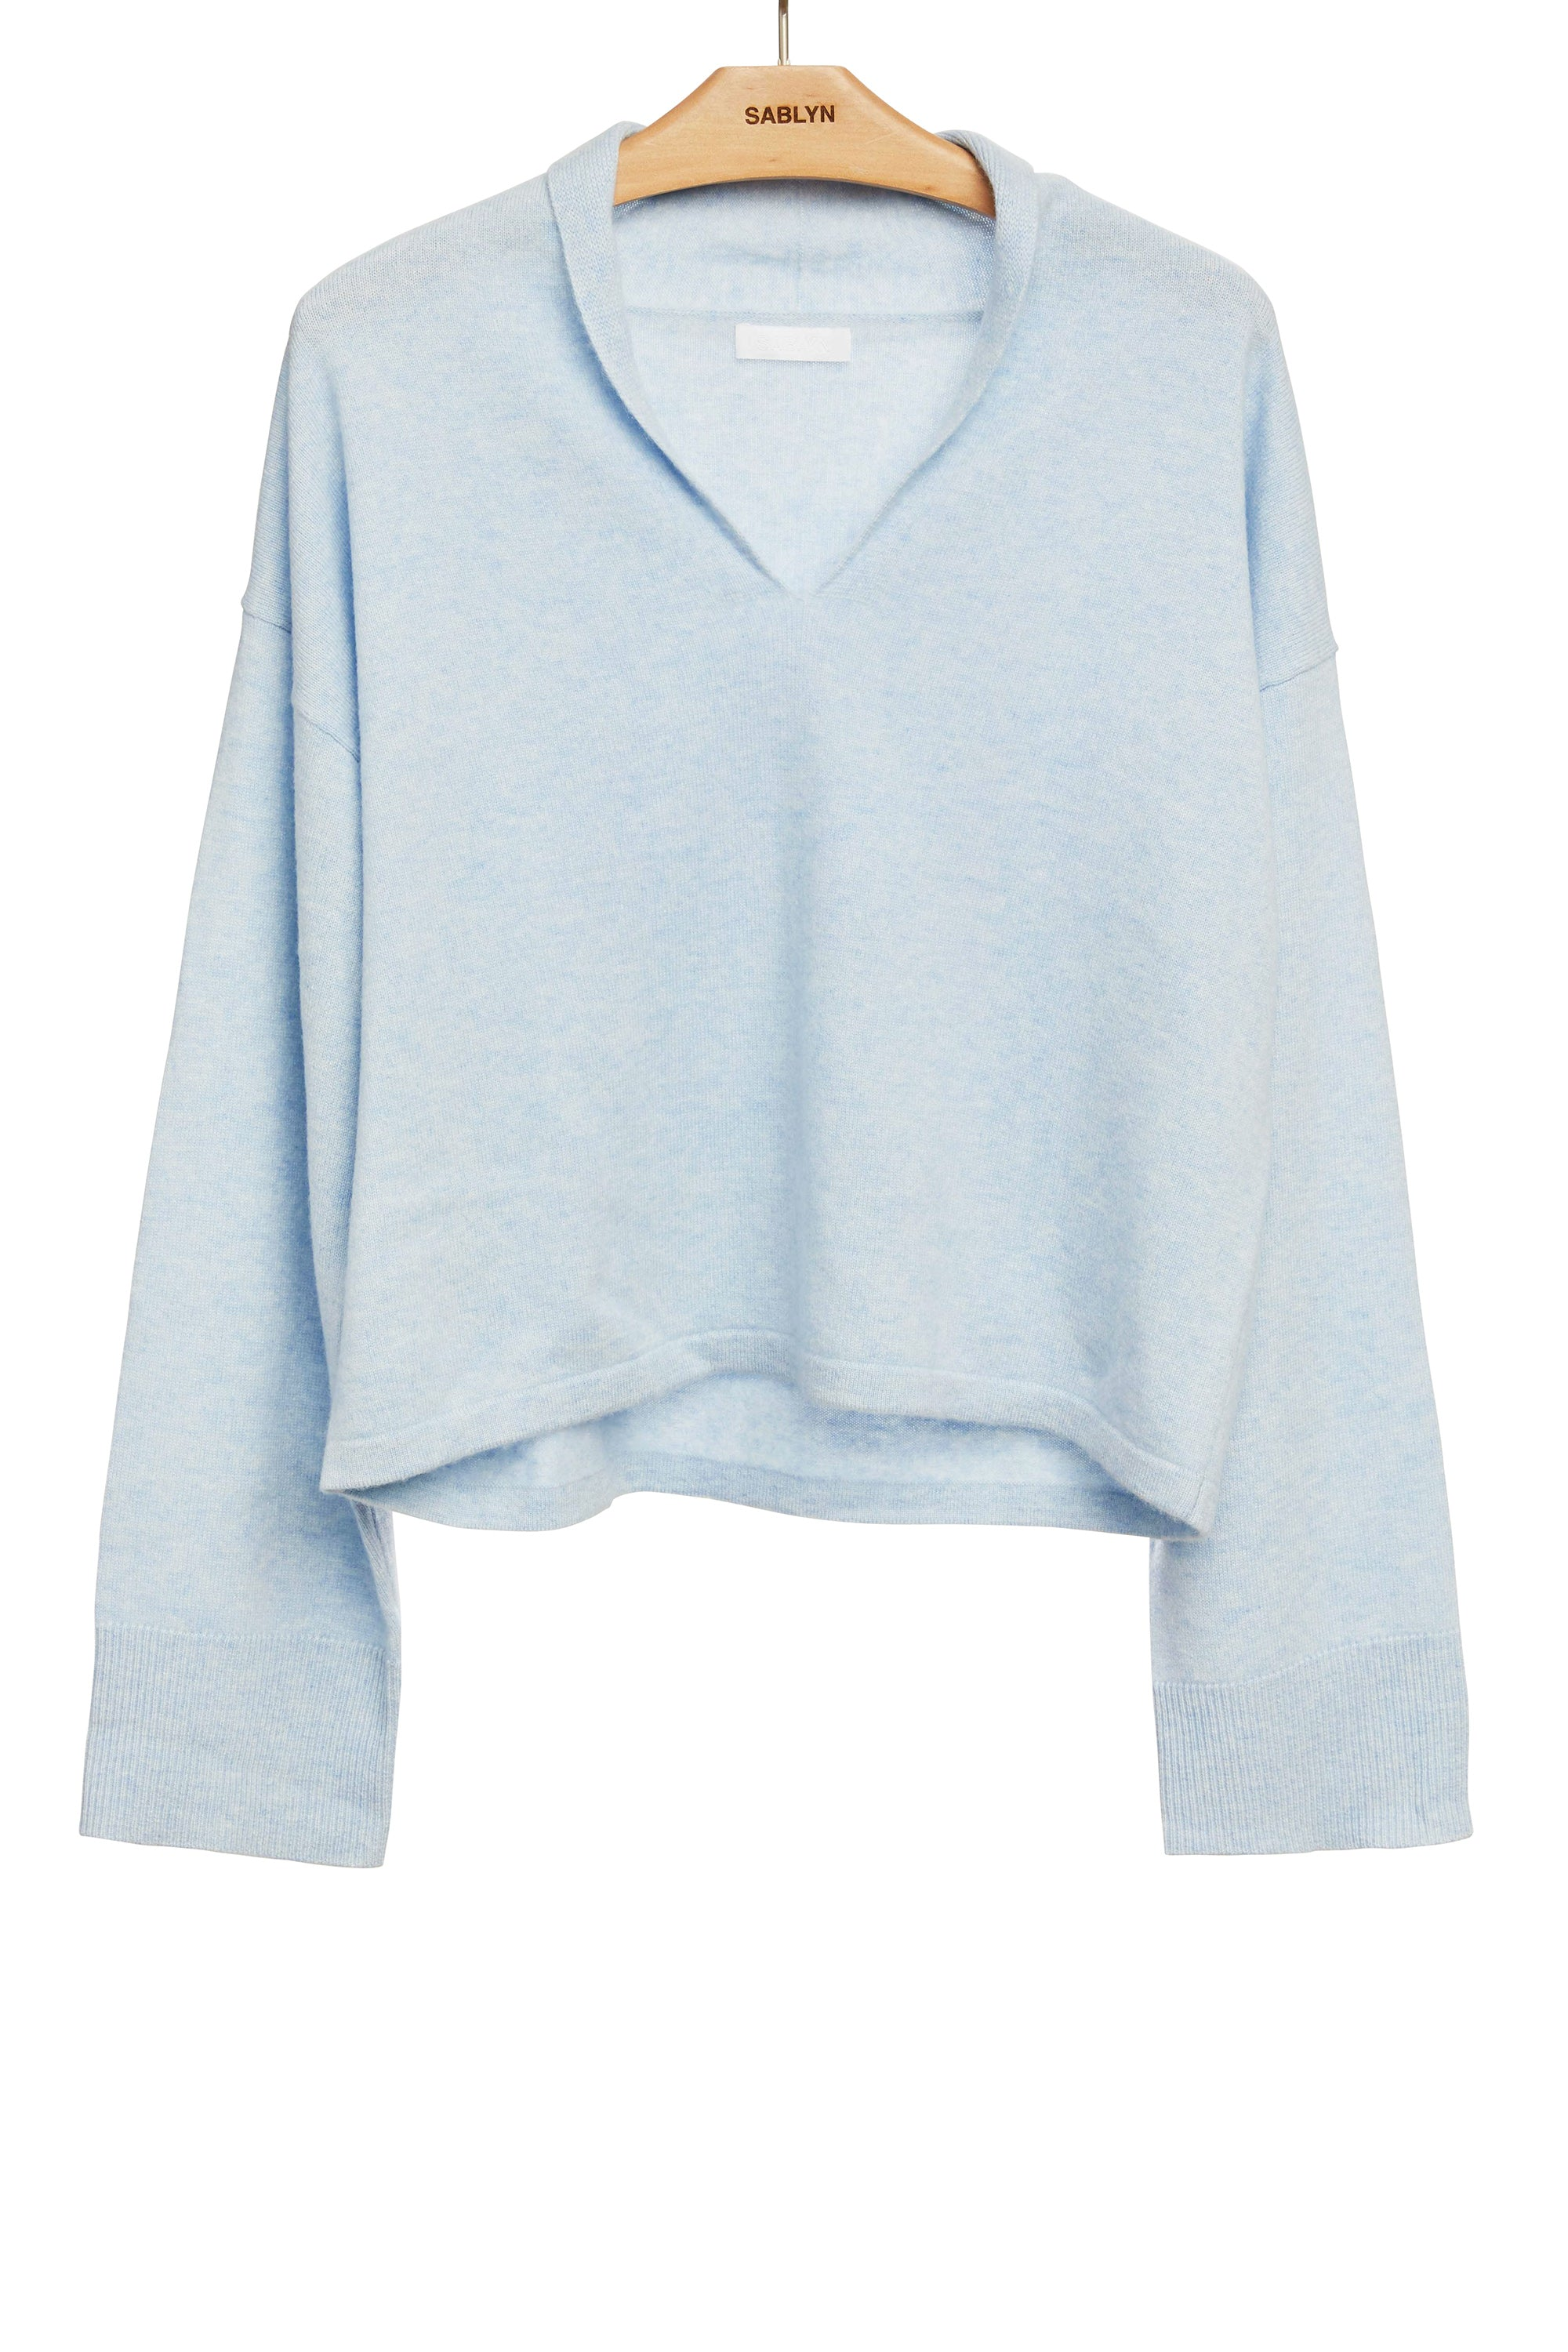 PARIS CASHMERE SWEATER | AZURE - Final Sale